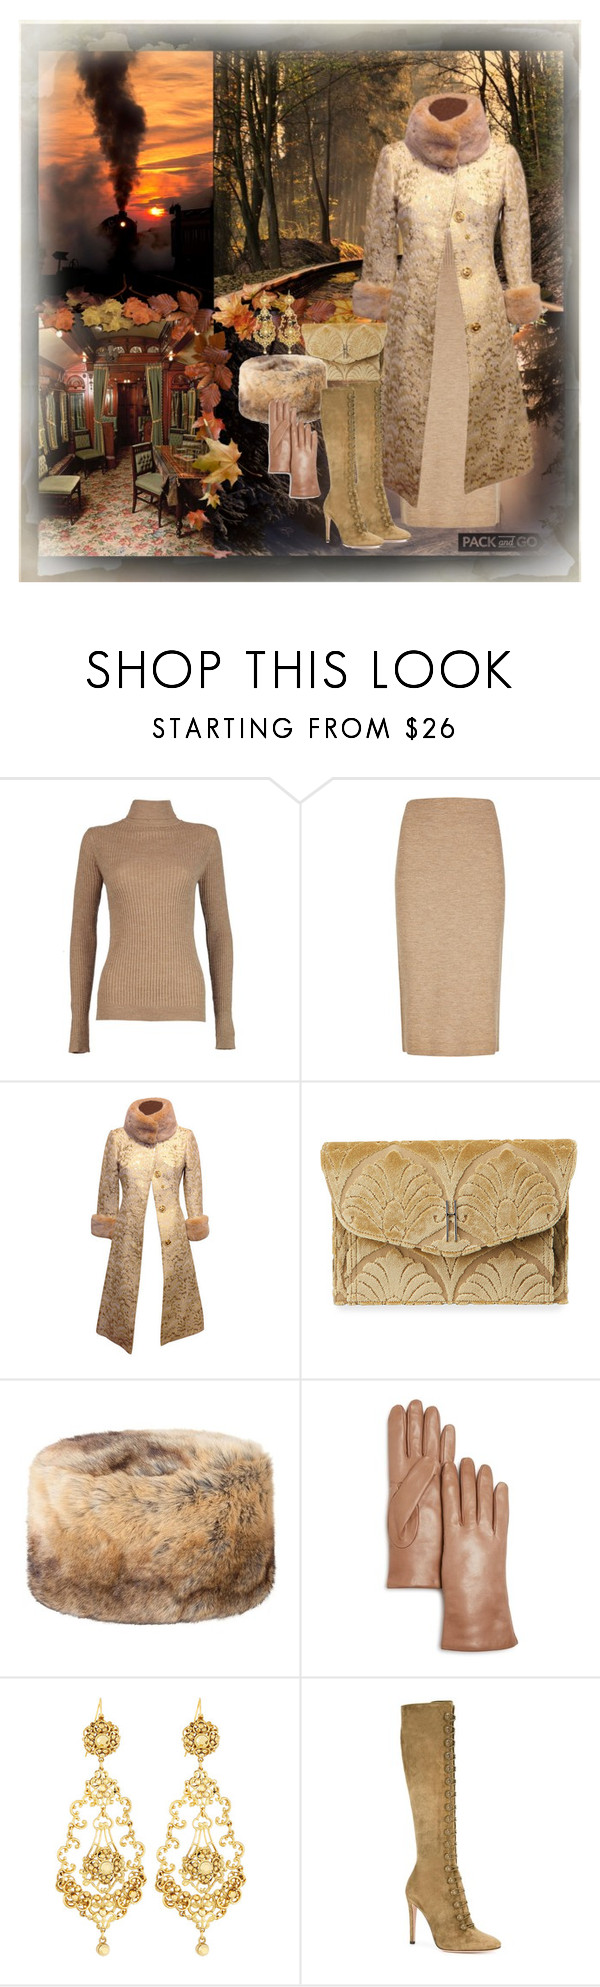 """""""Pack and Go: Winter Getaway"""" by dezaval ❤ liked on Polyvore featuring Boohoo, Winser London, Dolce&Gabbana, Hayward, DUBARRY, Bloomingdale's, Jose & Maria Barrera, Gianvito Rossi and Packandgo"""